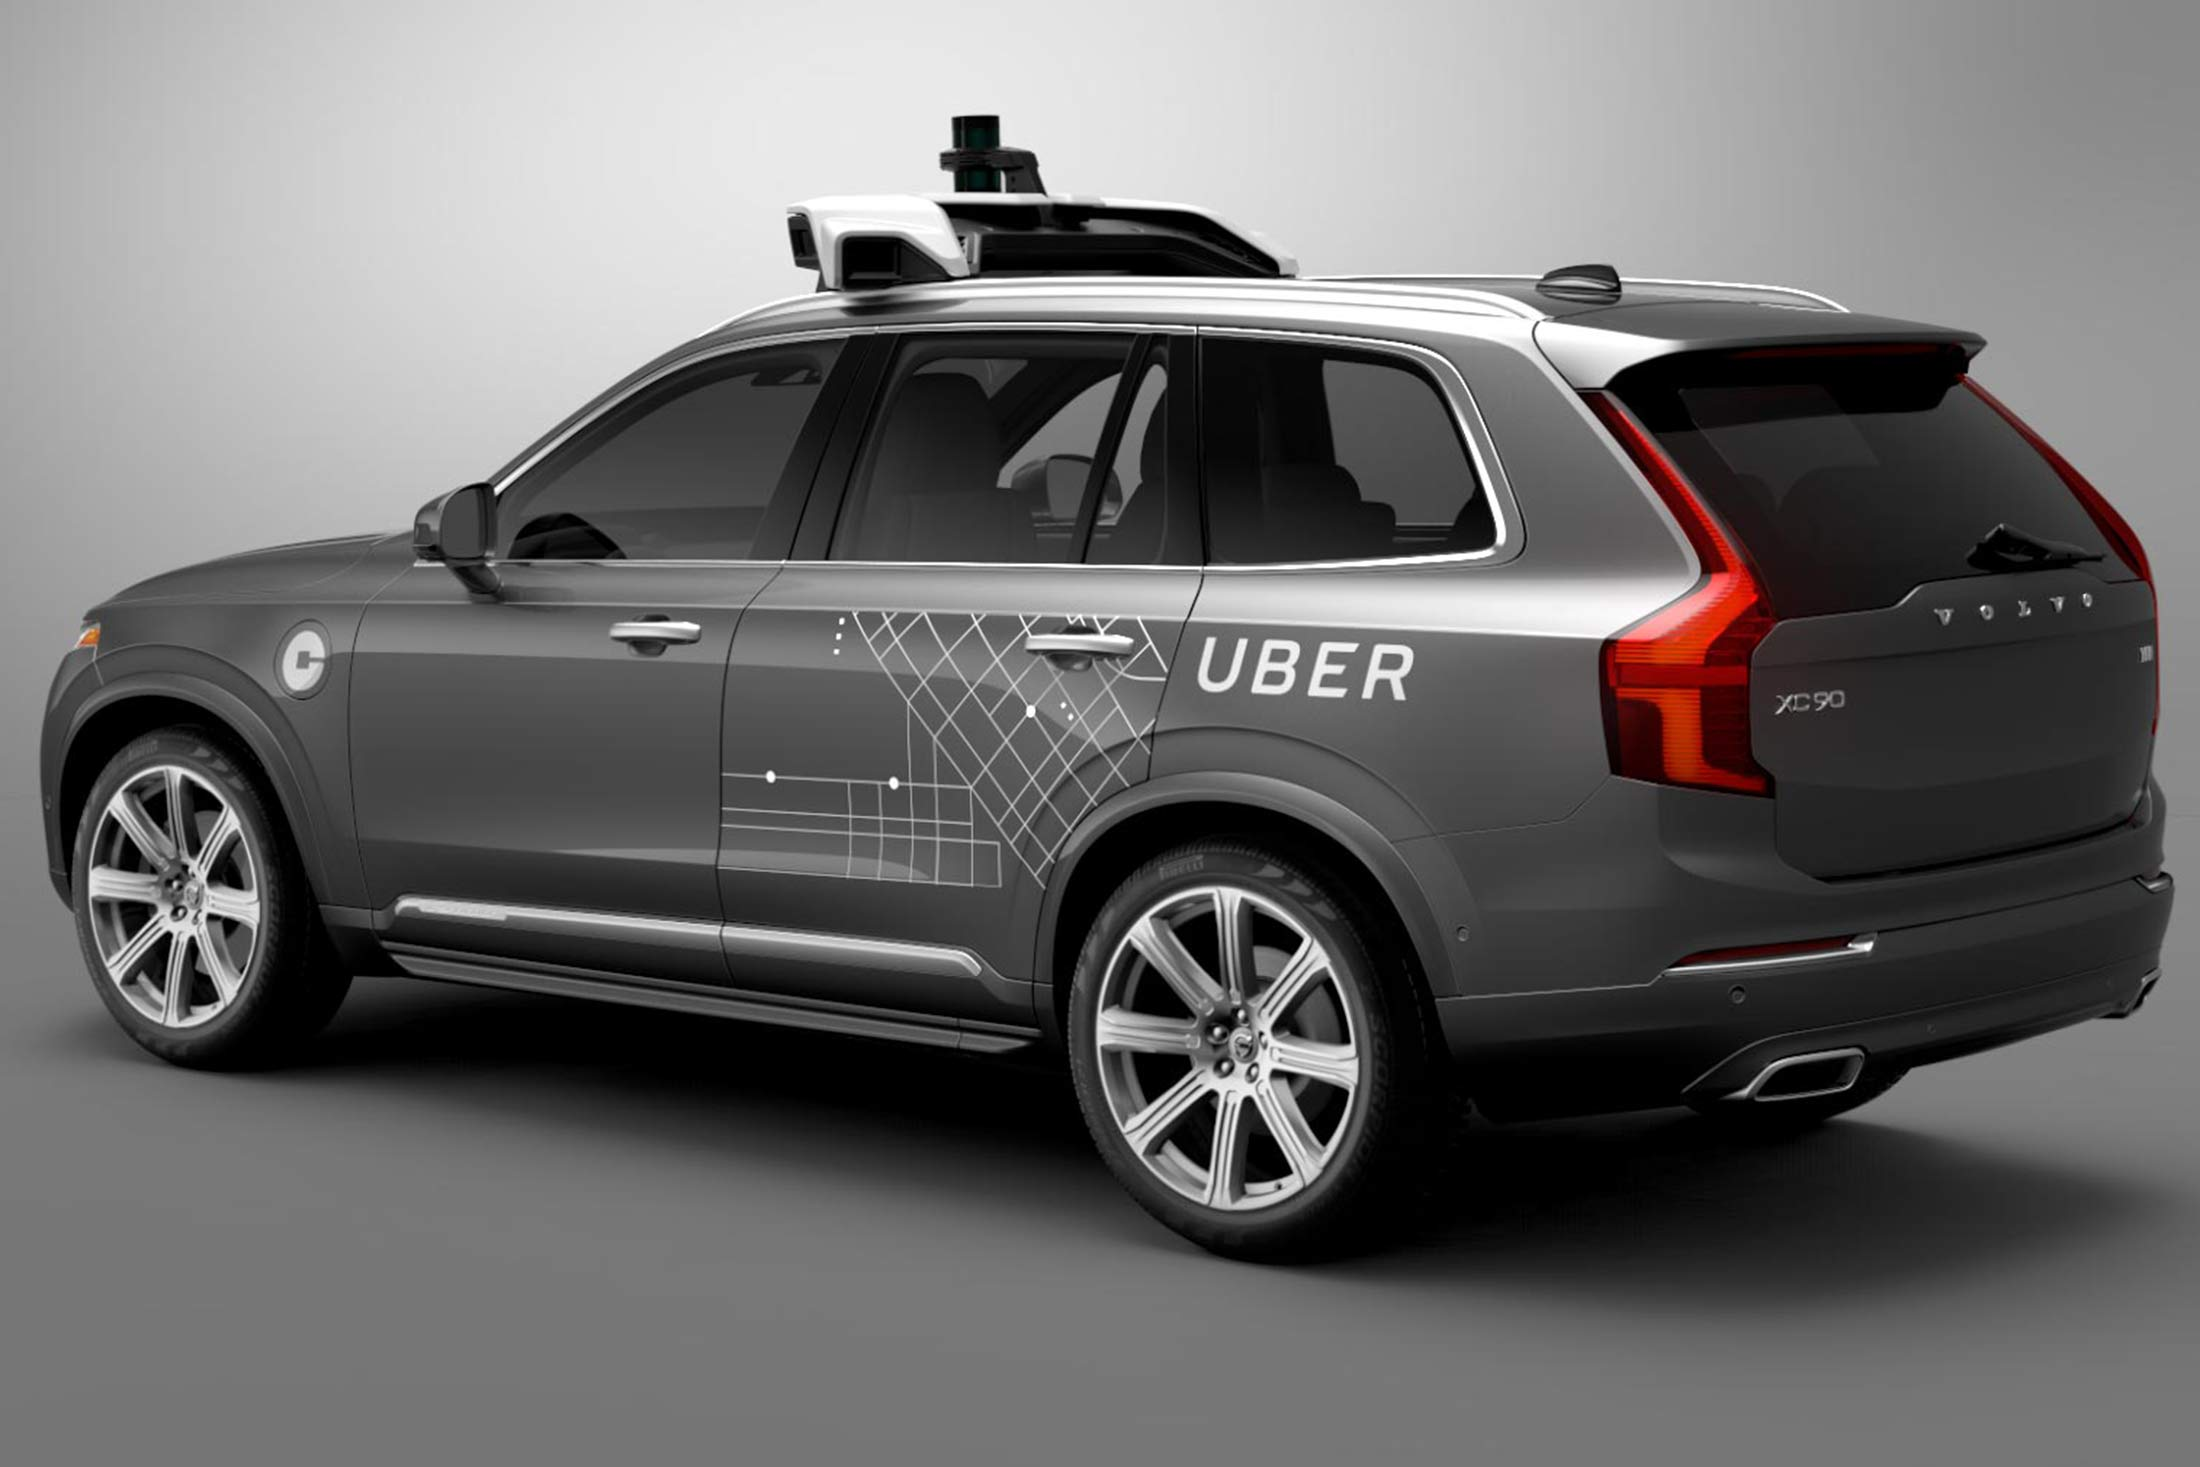 Uber S First Self Driving Fleet Arrives In Pittsburgh This Month